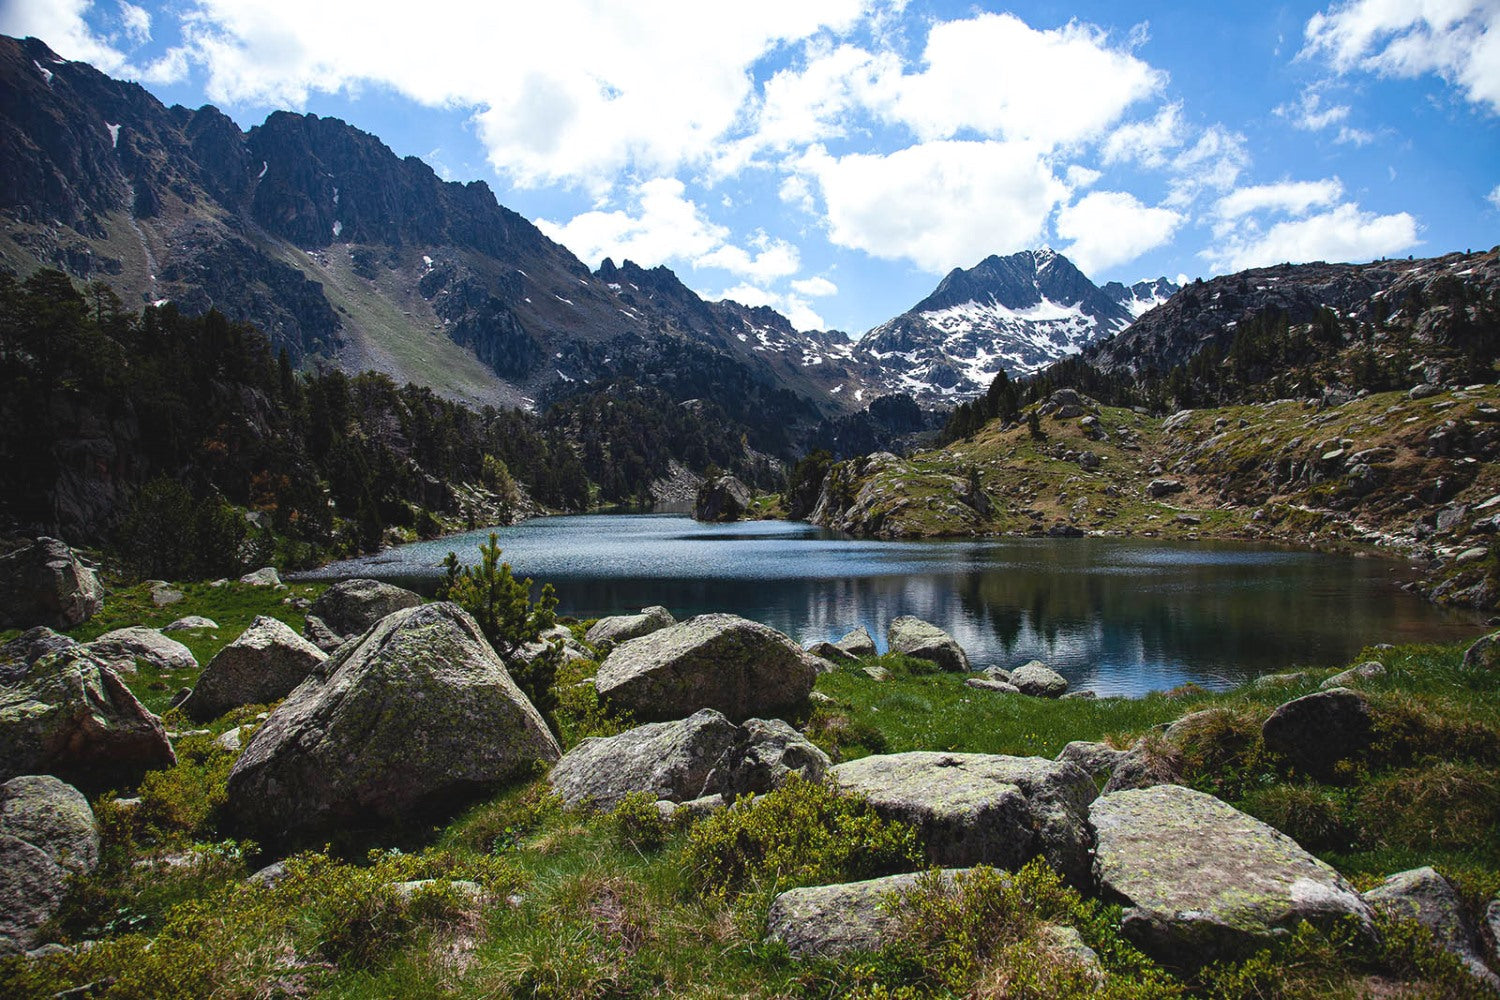 Parc Nacional d'Aigüestortes. From Lac Long. From right to left: Sendrosa ridges, in the middle of the photograph, the Tuc de Ratera. Photography: Júlia Miralles